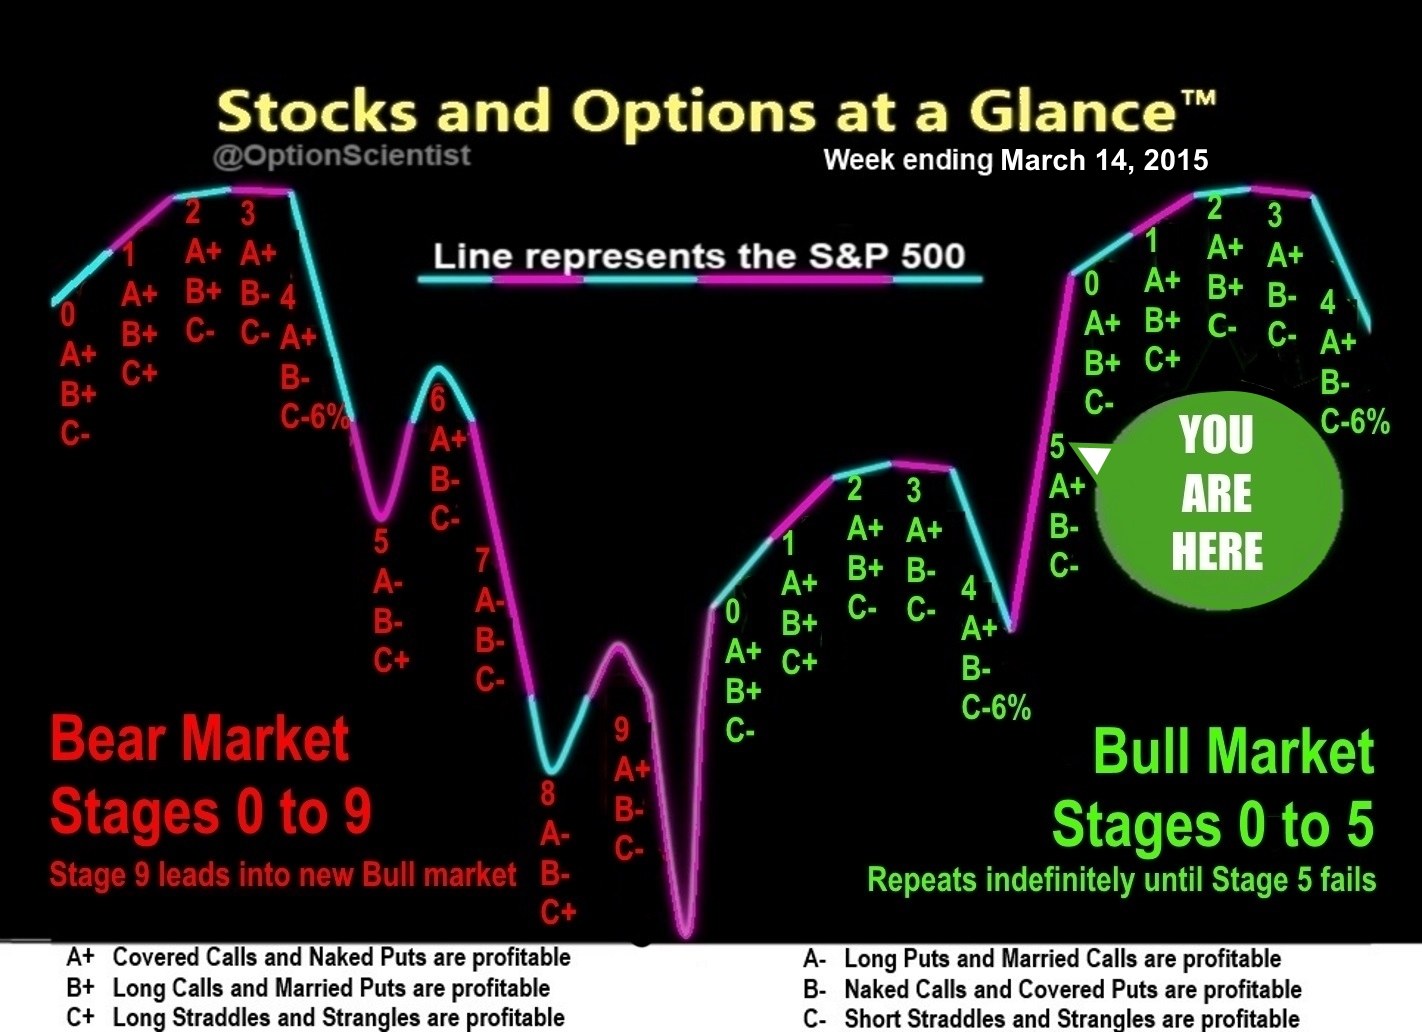 Stocks and Options at a Glance 03-14-15b